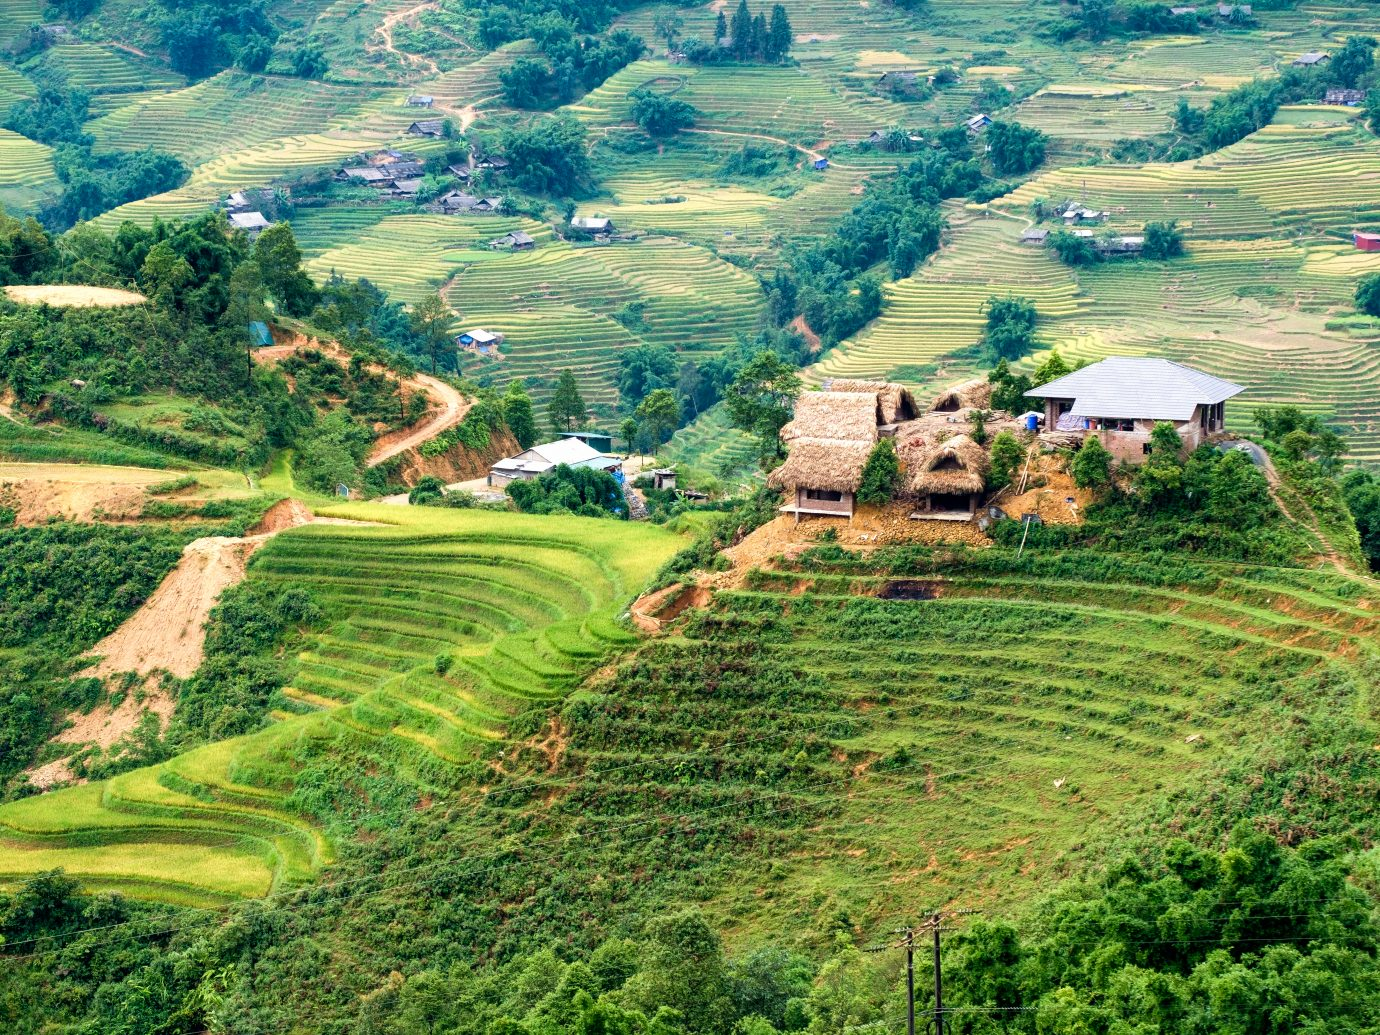 Cottage house on rice field terraced in valley